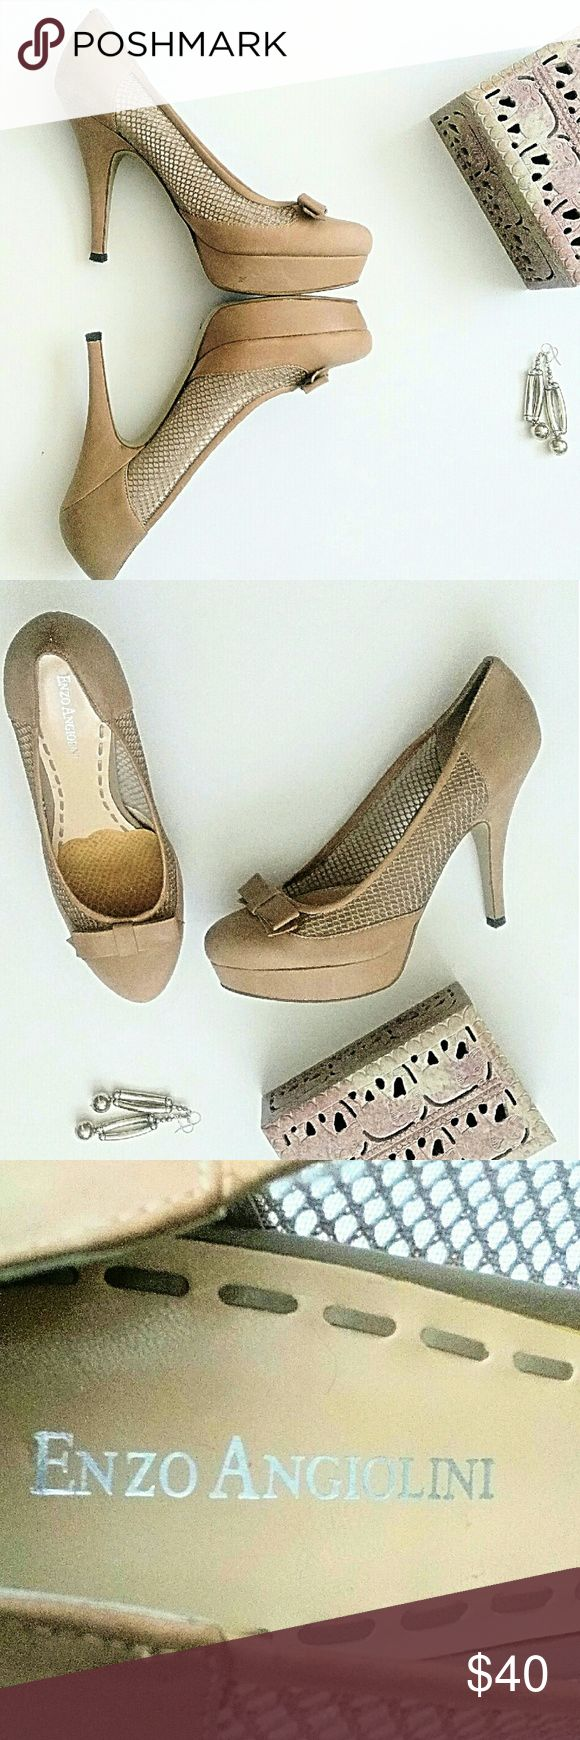 Enzo Angiolini Leather Bow Toe Beige Pumps 100% leather uppers with textile mesh inserts adorning both sides of shoes. Chic bow on almond-toe shoe fronts. Heels approx. 4.5in. w/comfortable 1in platforms to making walking easy. Height without the pain!  EUC, worn once in a wedding.  Every woman needs this kind of full on neutral pump. Enzo Angiolini Shoes Heels